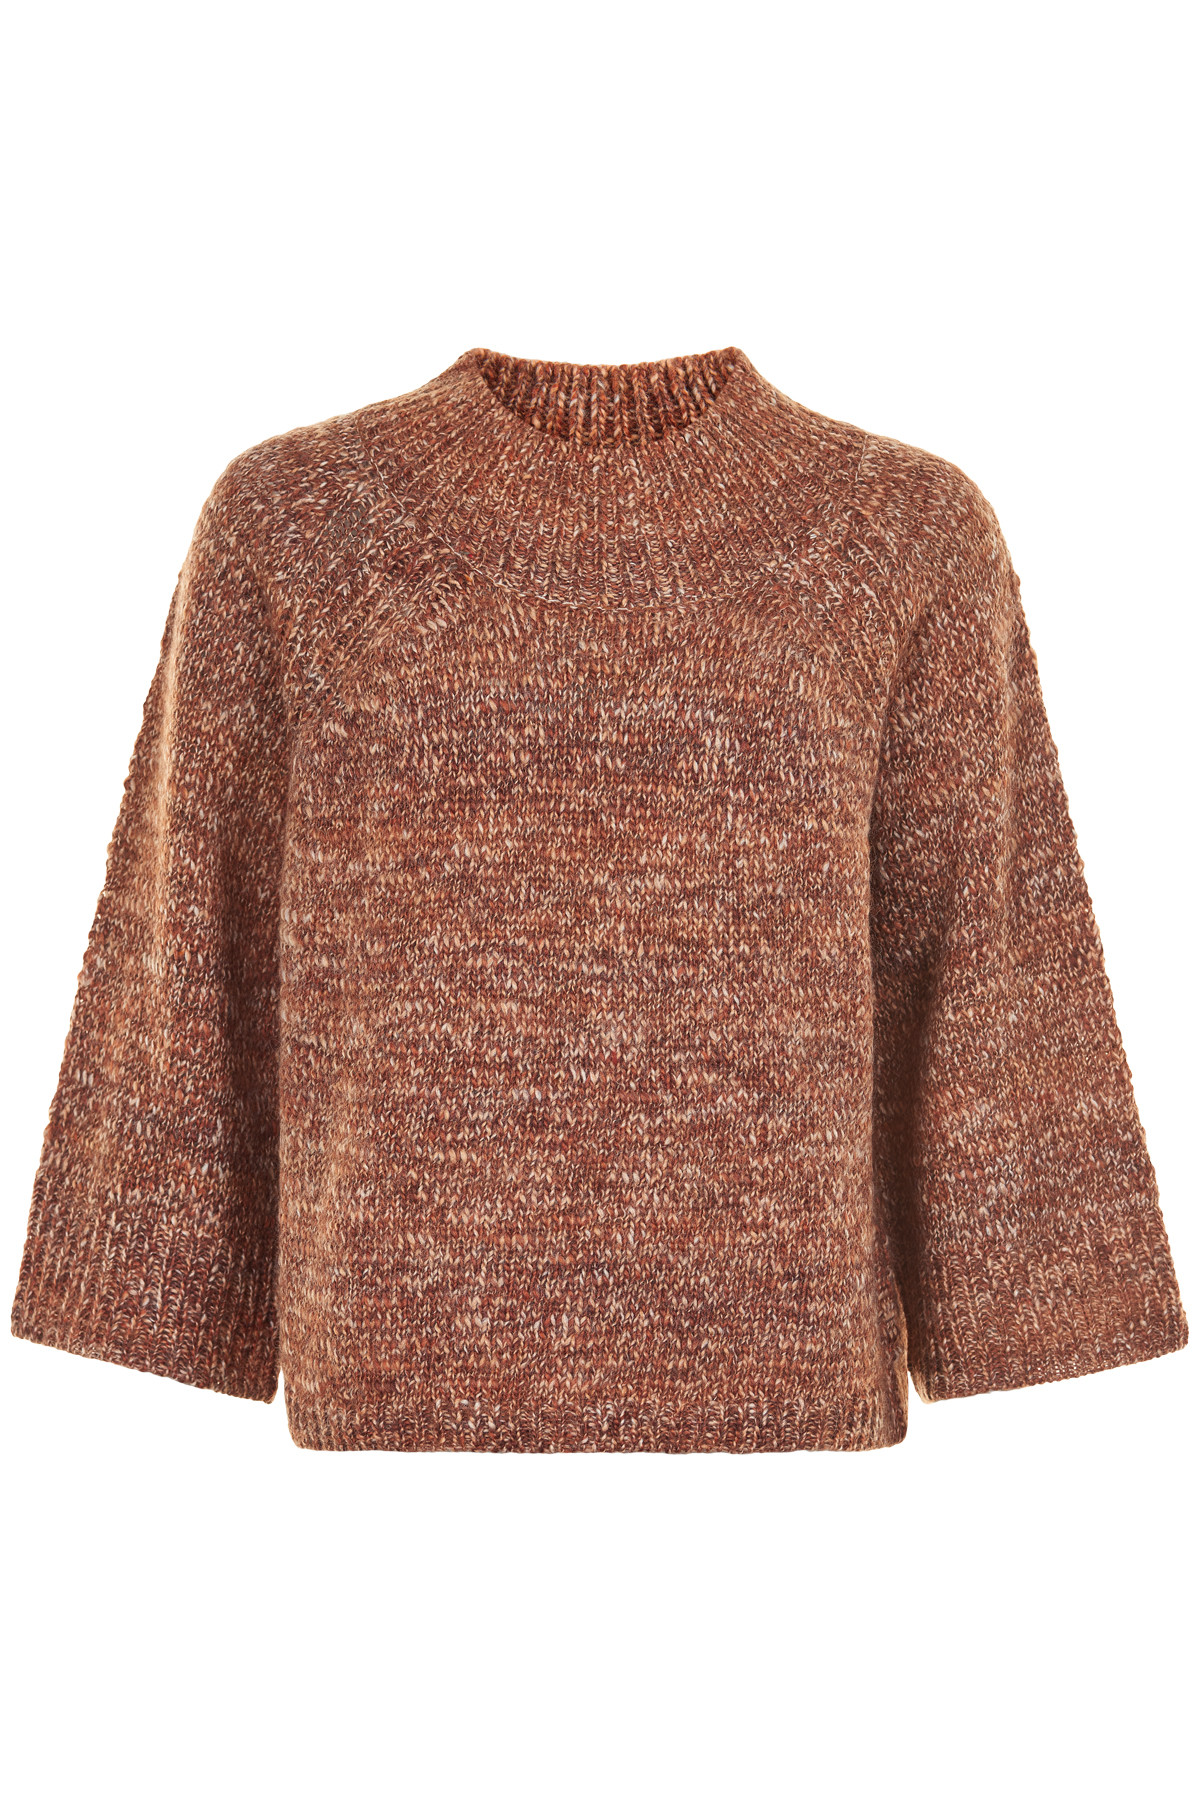 Image of   AND LESS ALHASTI PULLOVER 5519201 (Rawhide, S)